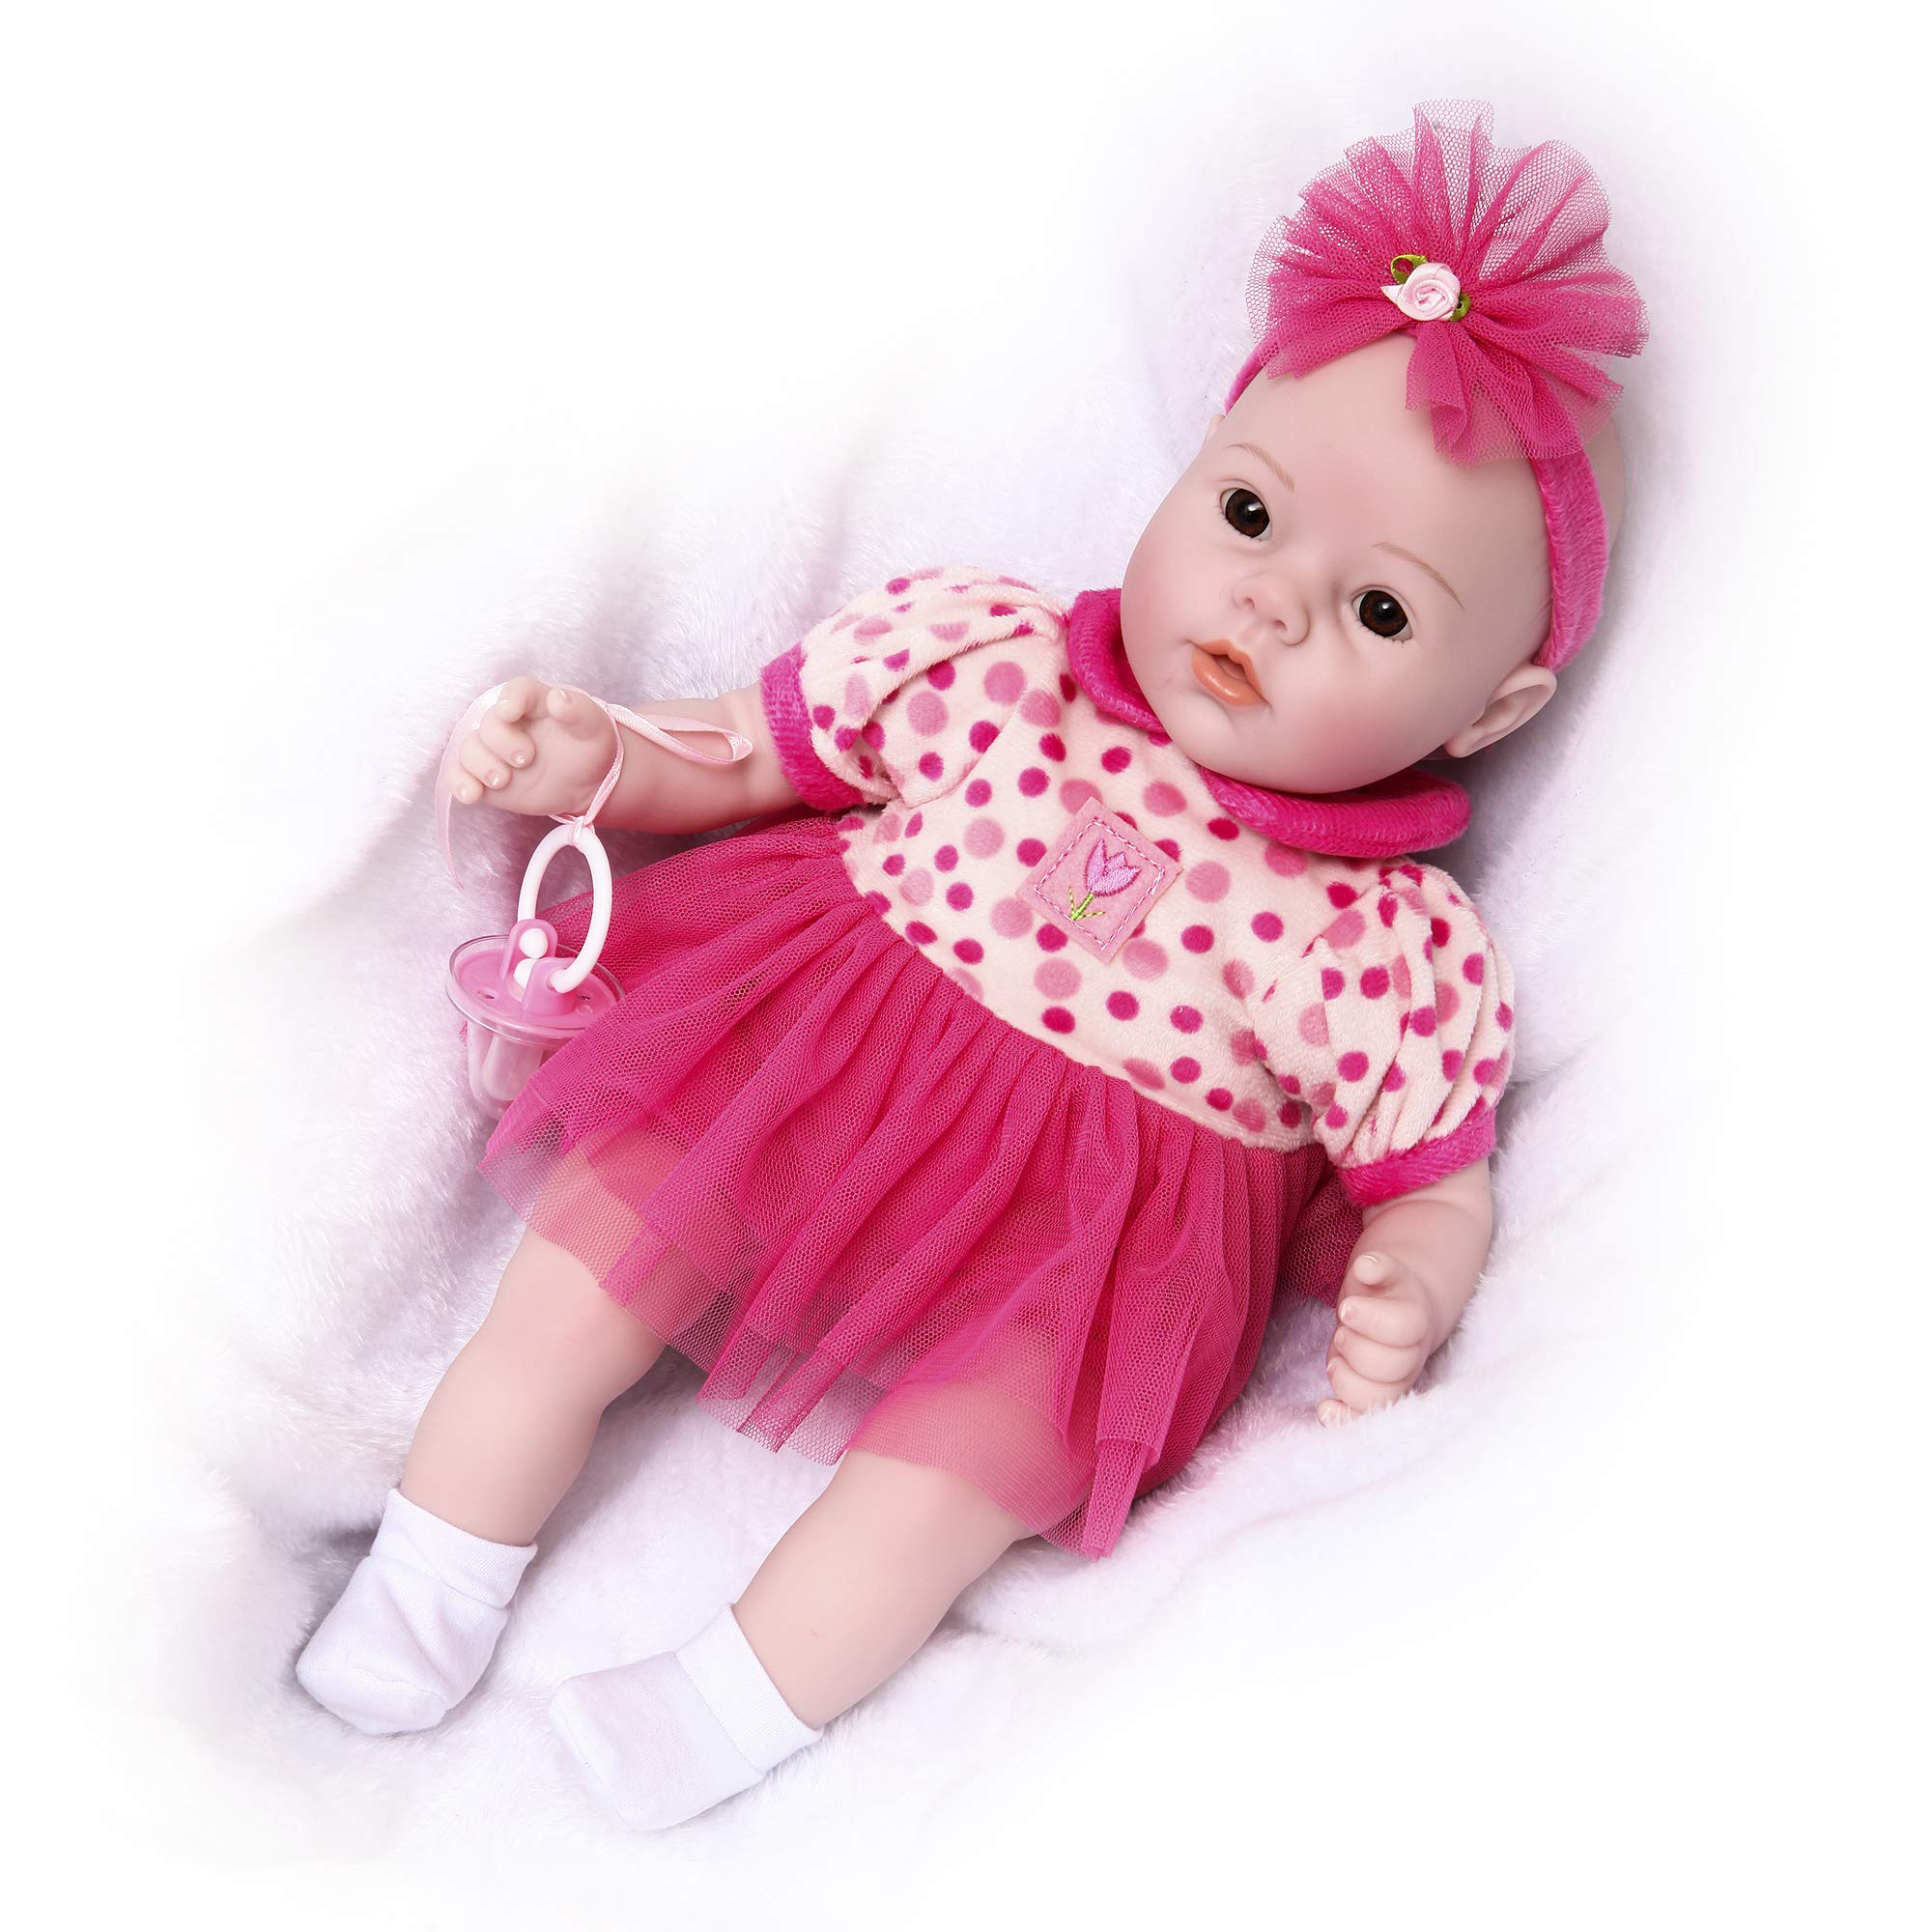 Soft Body Baby Doll, Lifelike Realistic Reborn Babies Dolls Toddler Kids Gifts Toys,(18 inch, Polk Dot Baby)